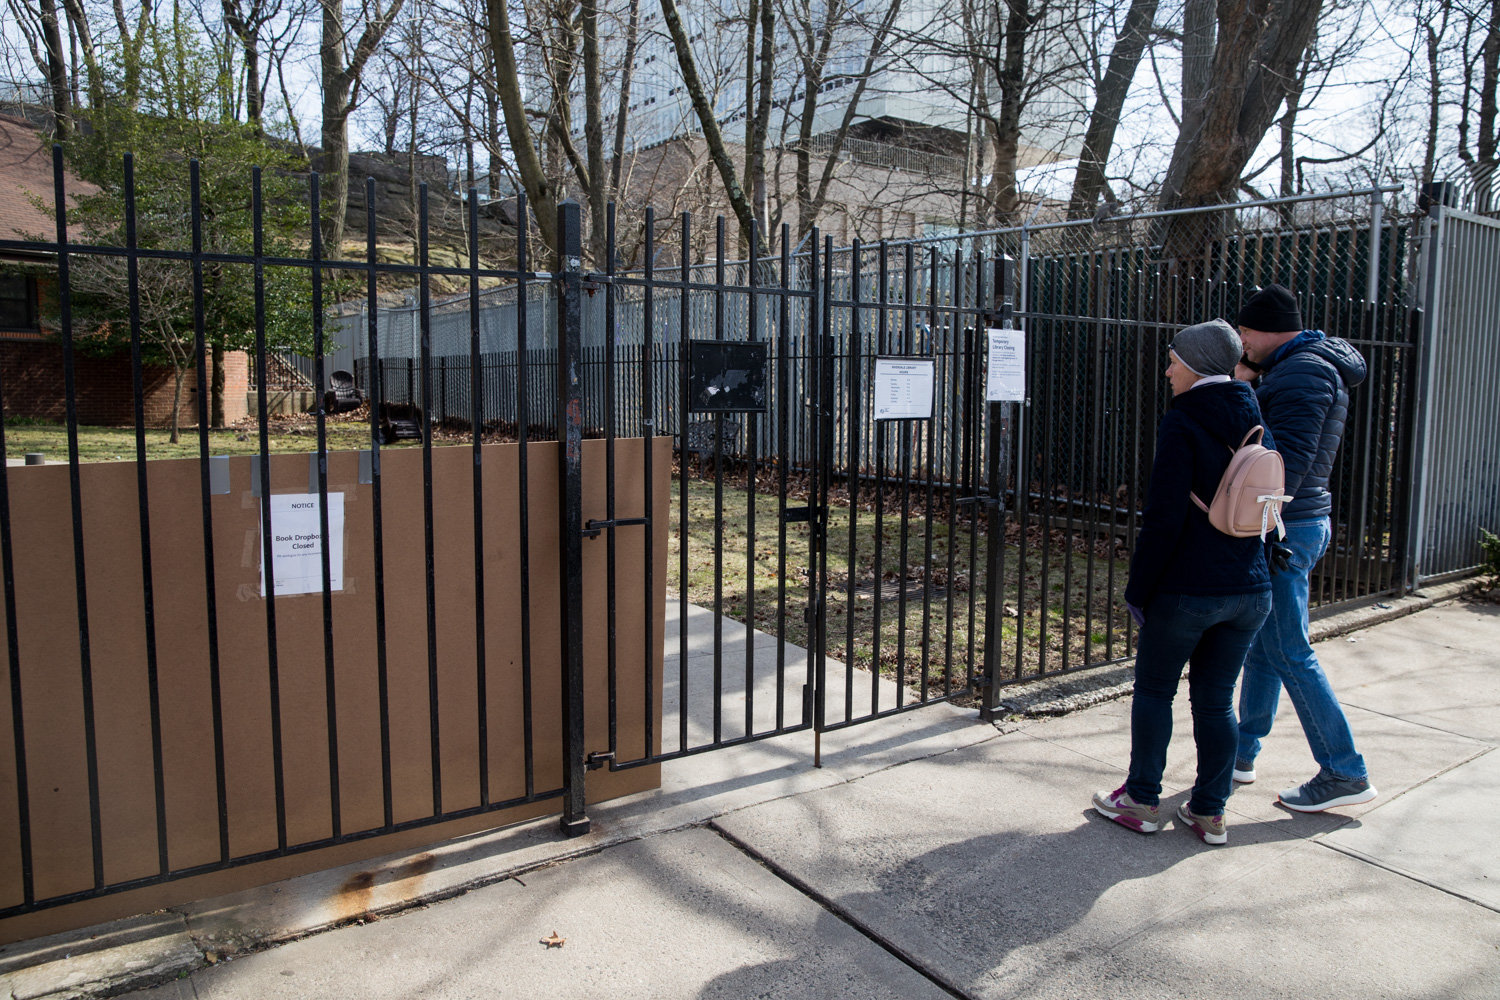 Passersby read the sign announcing the Riverdale Library's temporary closure in response to the coronavirus outbreak. The library is schedule to reopen March 31.